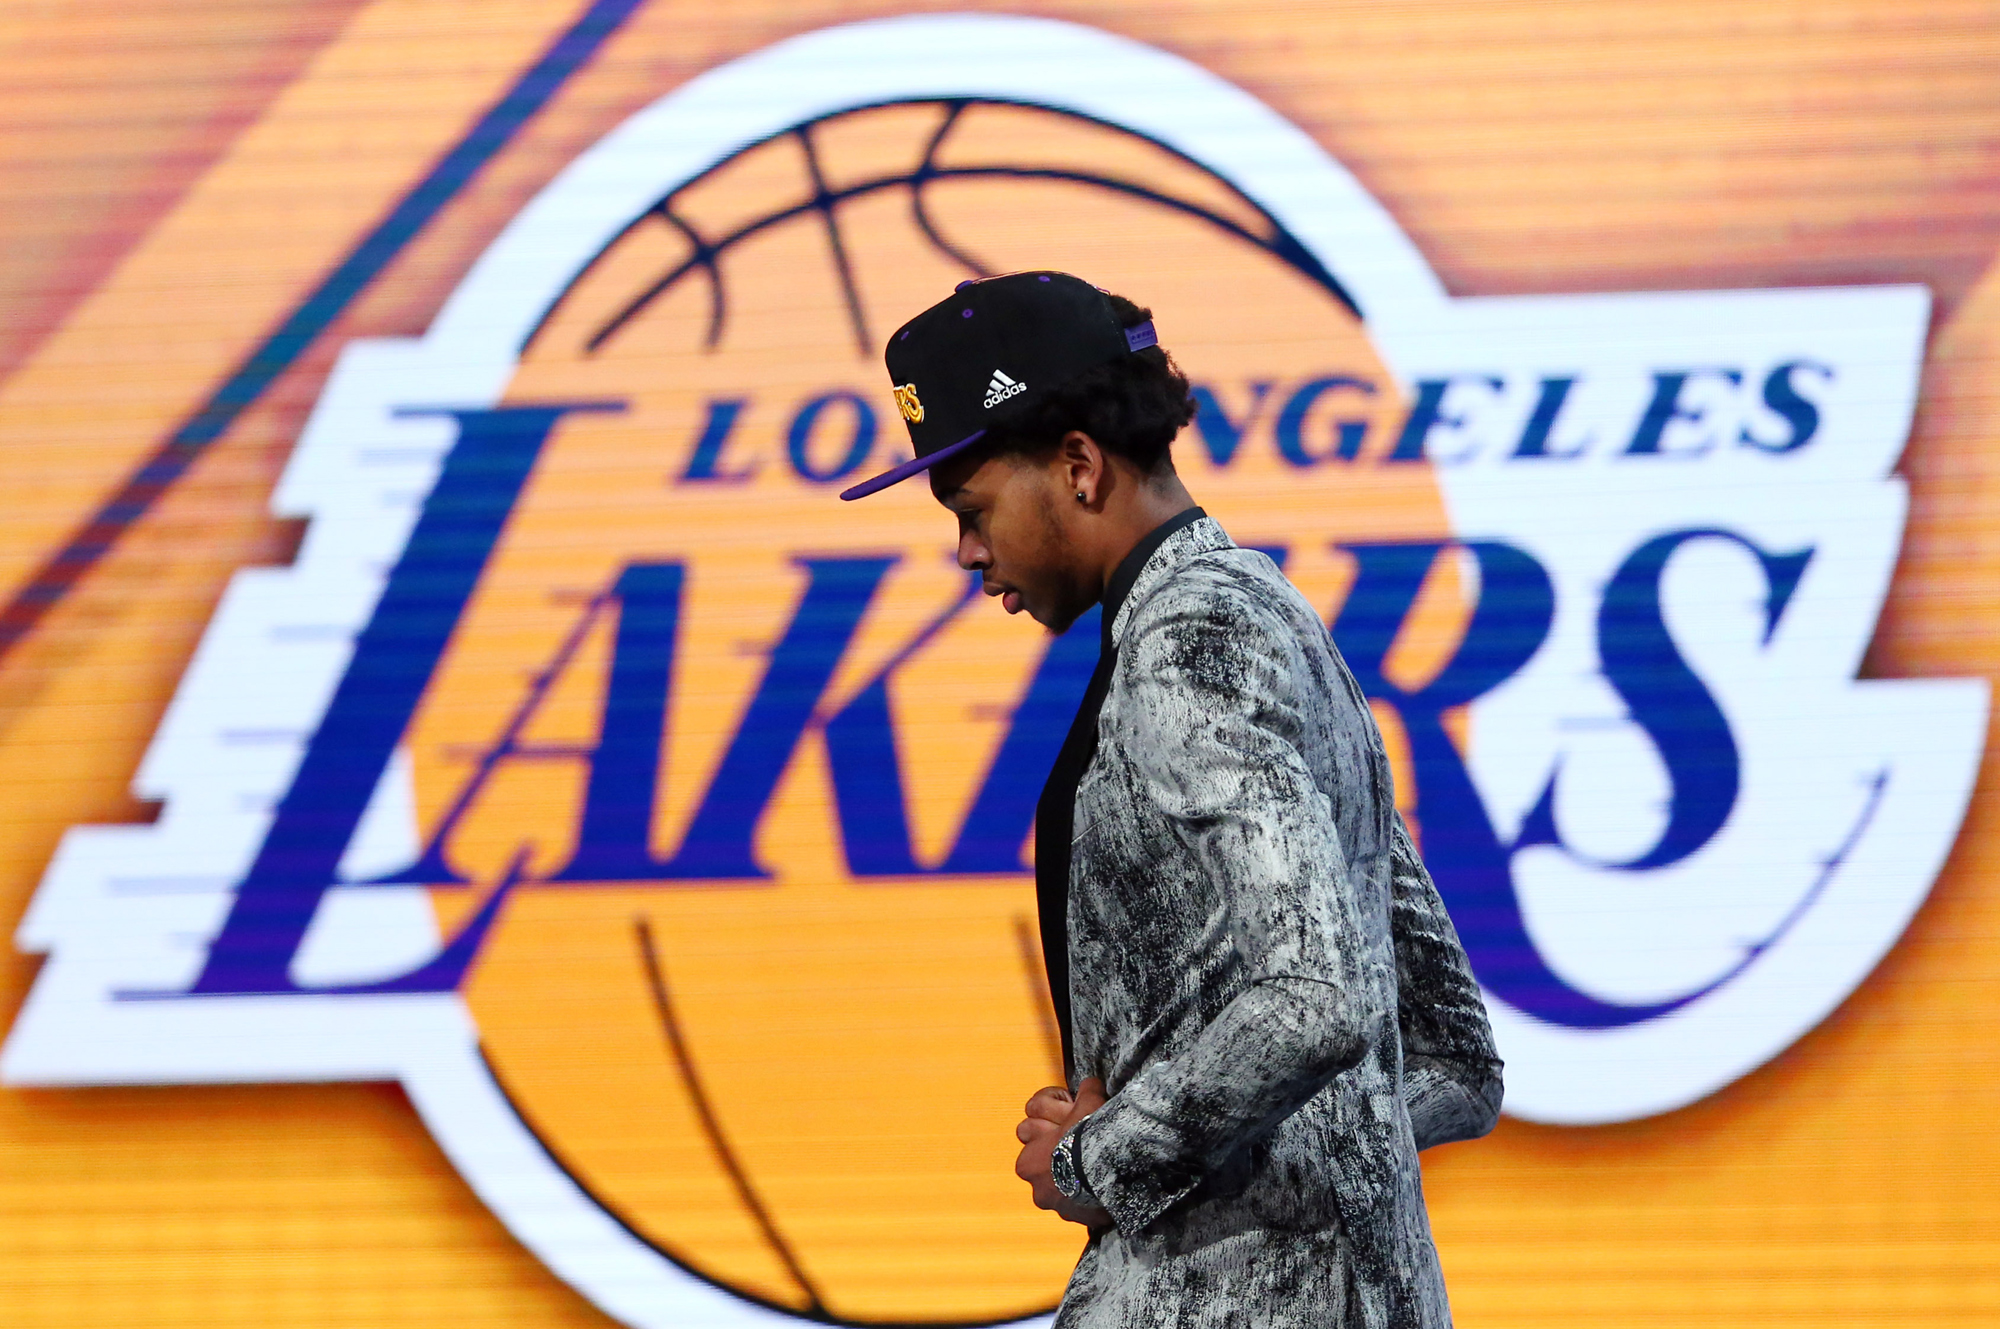 Brandon Ingram (Duke) walks off stage after being selected as the number two overall pick to the Los Angeles Lakers in the first round of the 2016 NBA Draft at Barclays Center.